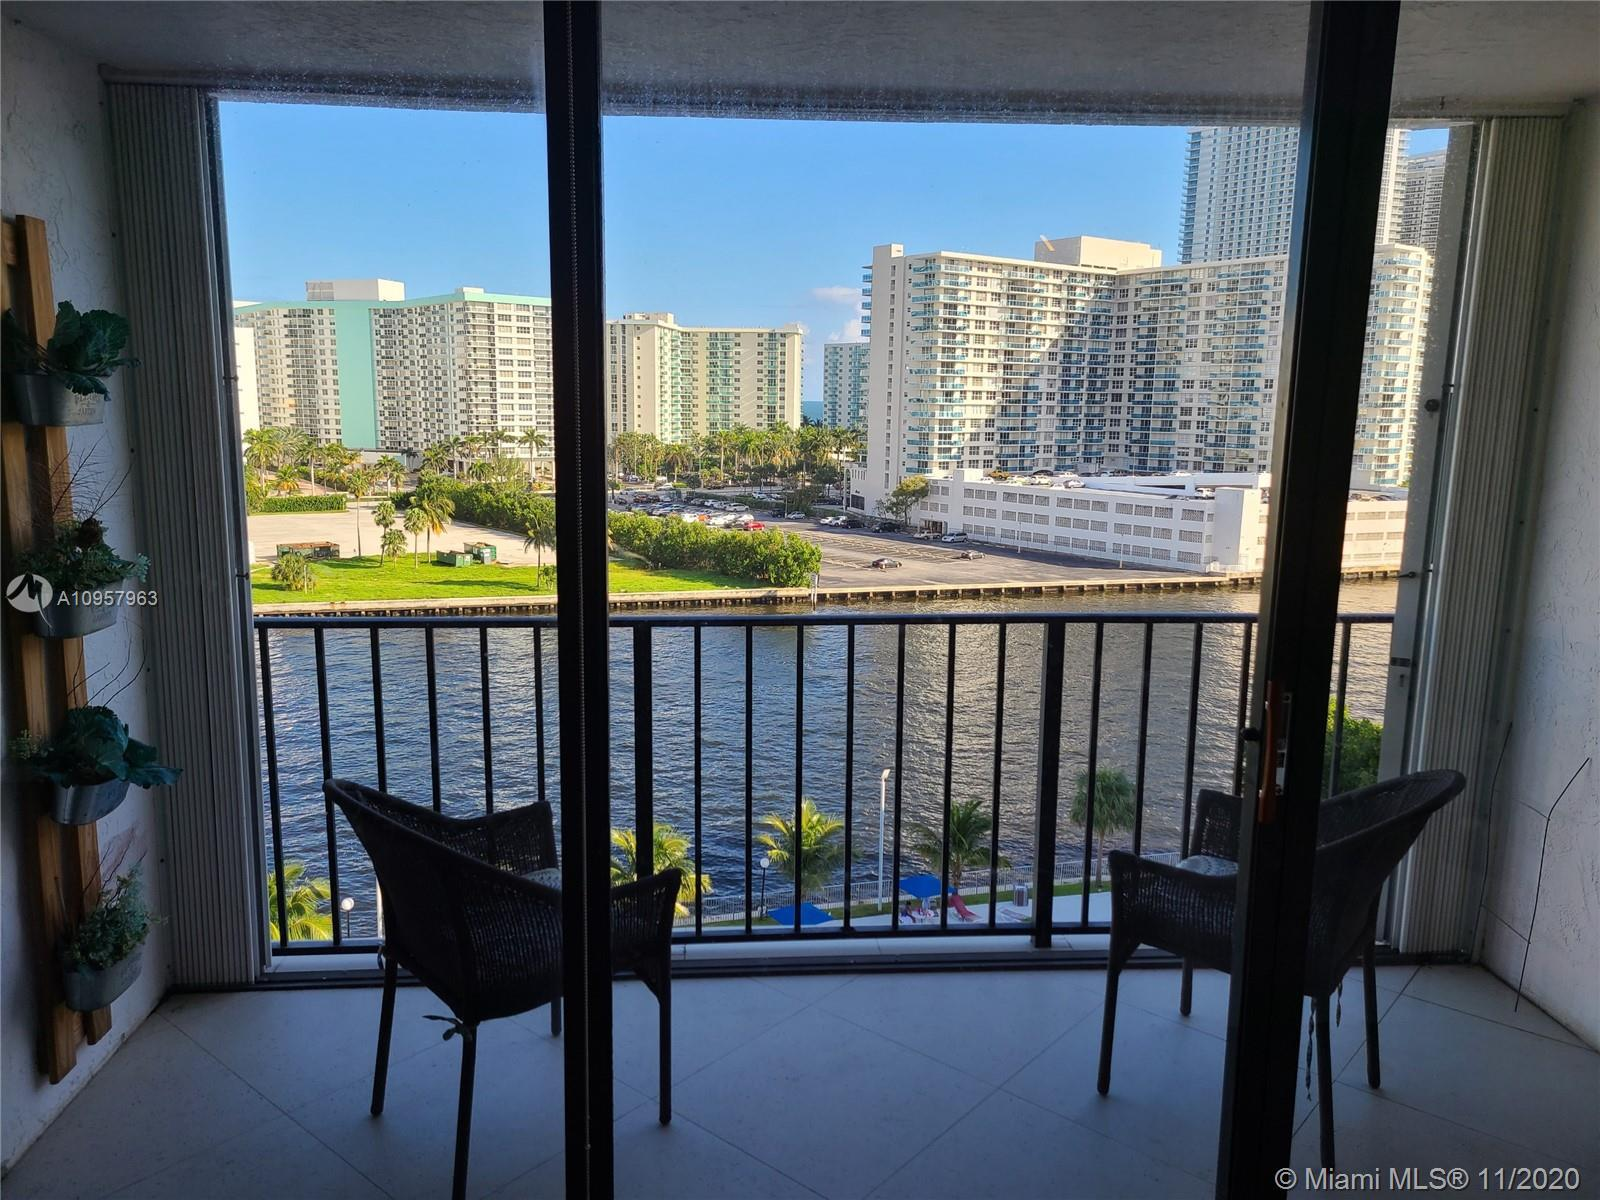 Gorgeous unit with direct intercostal view from every room. 2 parking spot (one cover) hurricane sh